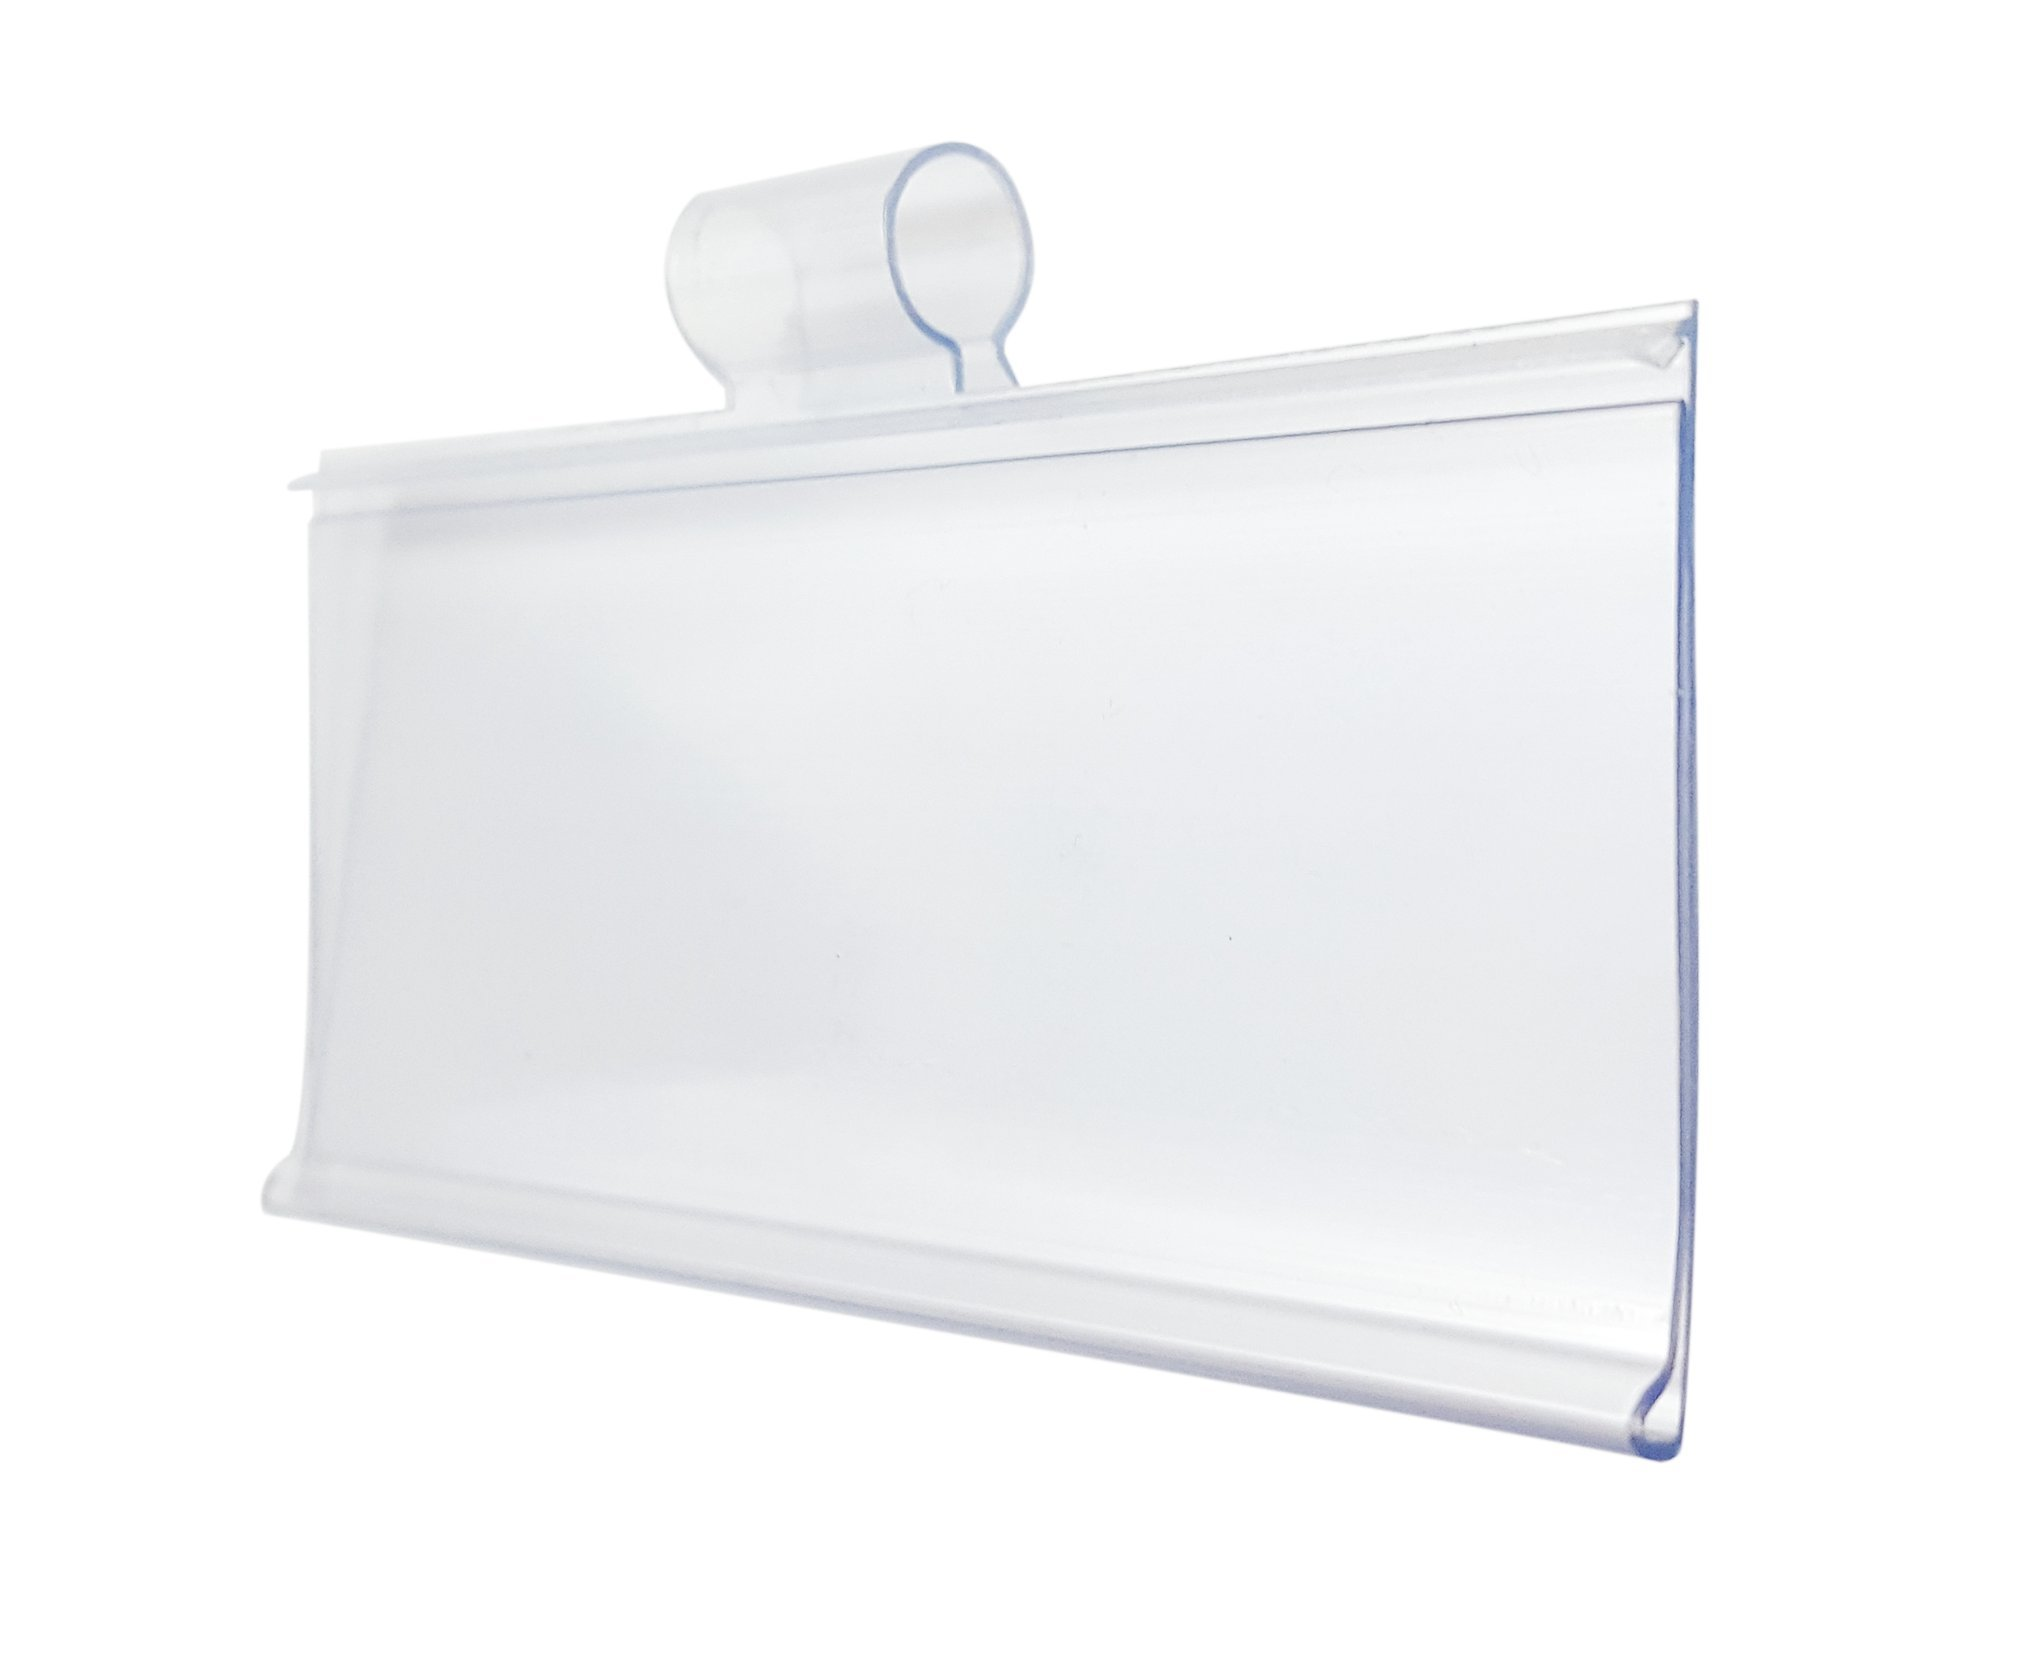 Plastic Label Holders 3'' - Ultra Clear Easy Clip Design - Pack of 100